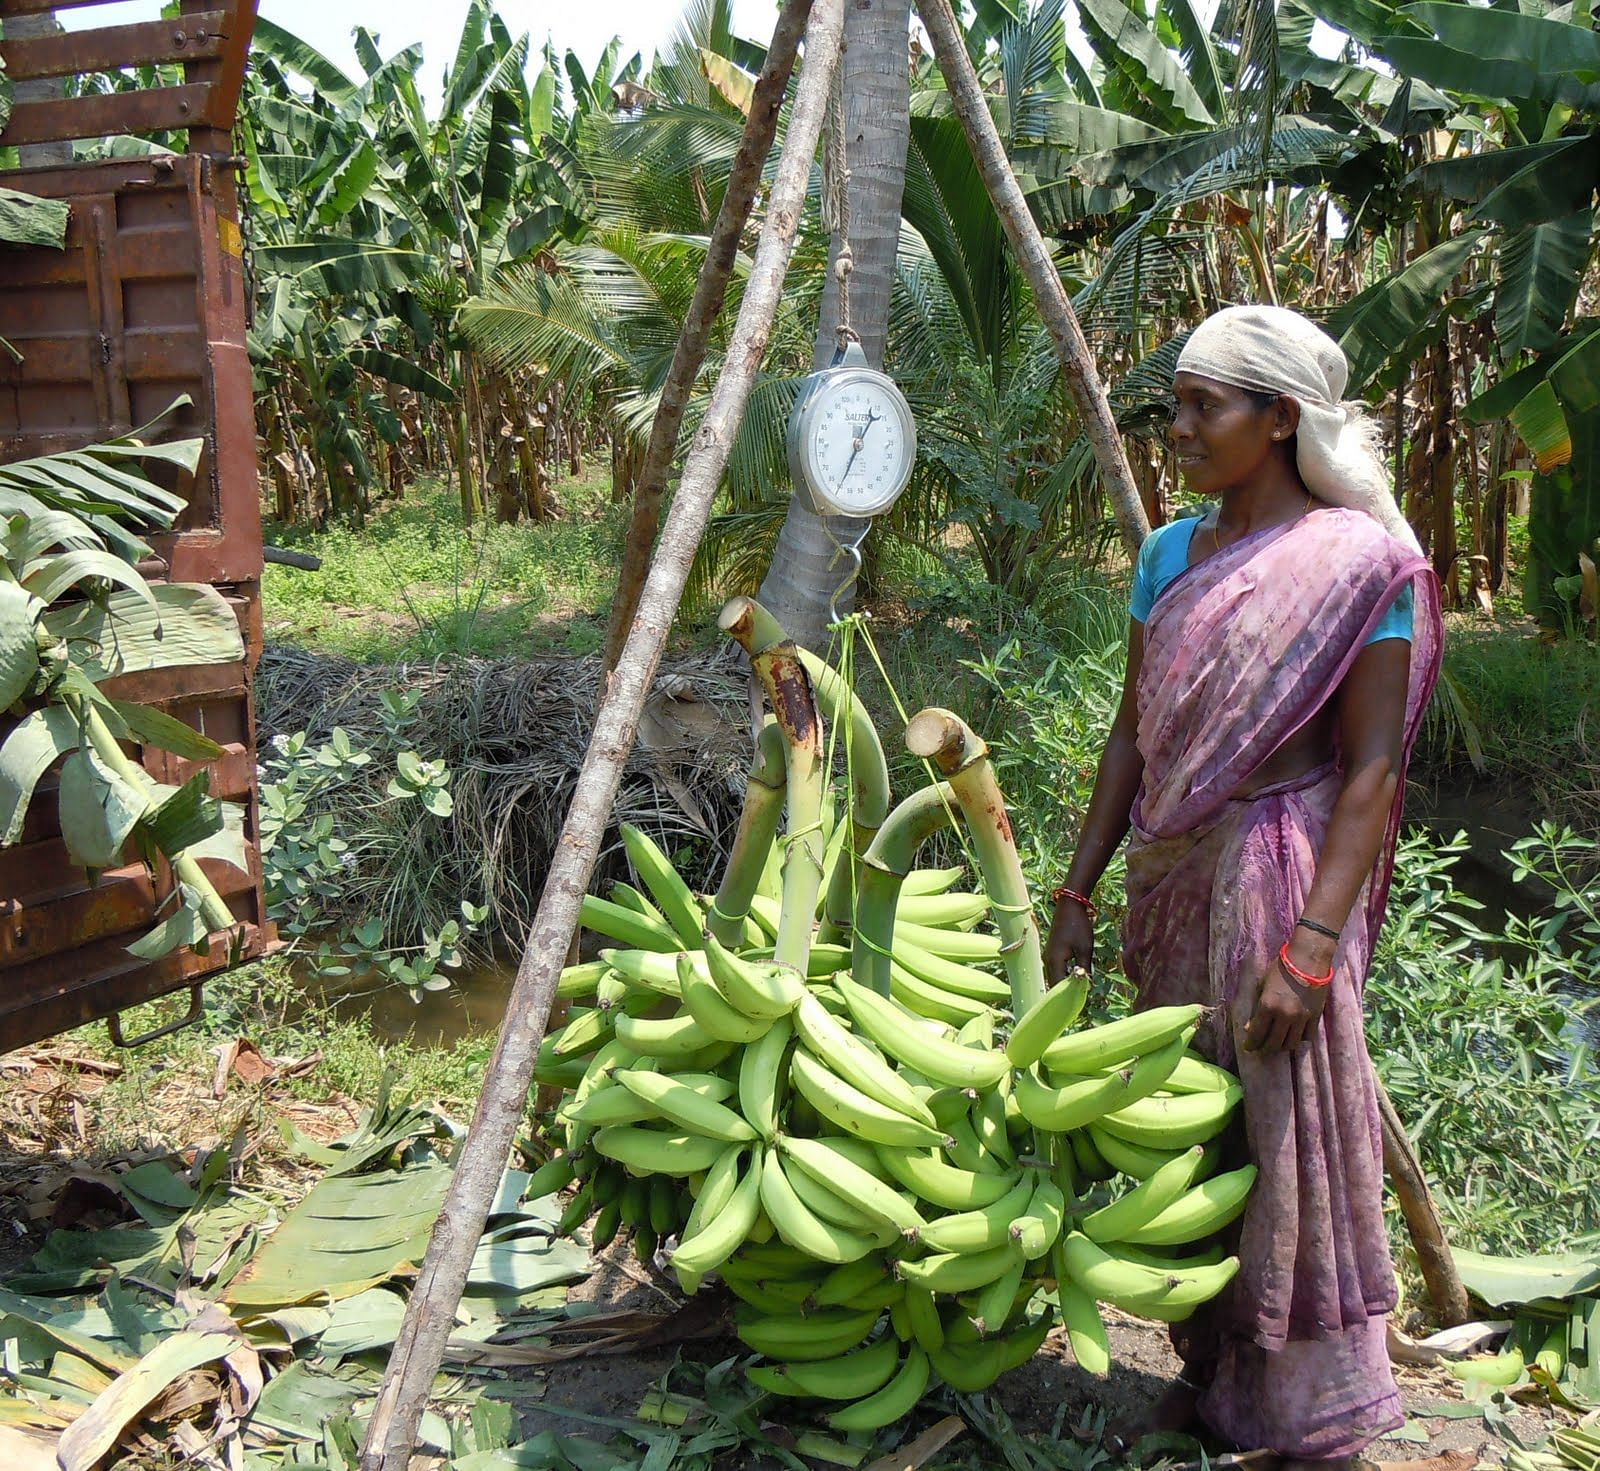 Kudumbashree The Kerala Governments Poverty Alleviation Programme Launched In 1998 Has Brought About A Green Revolution In The State Today